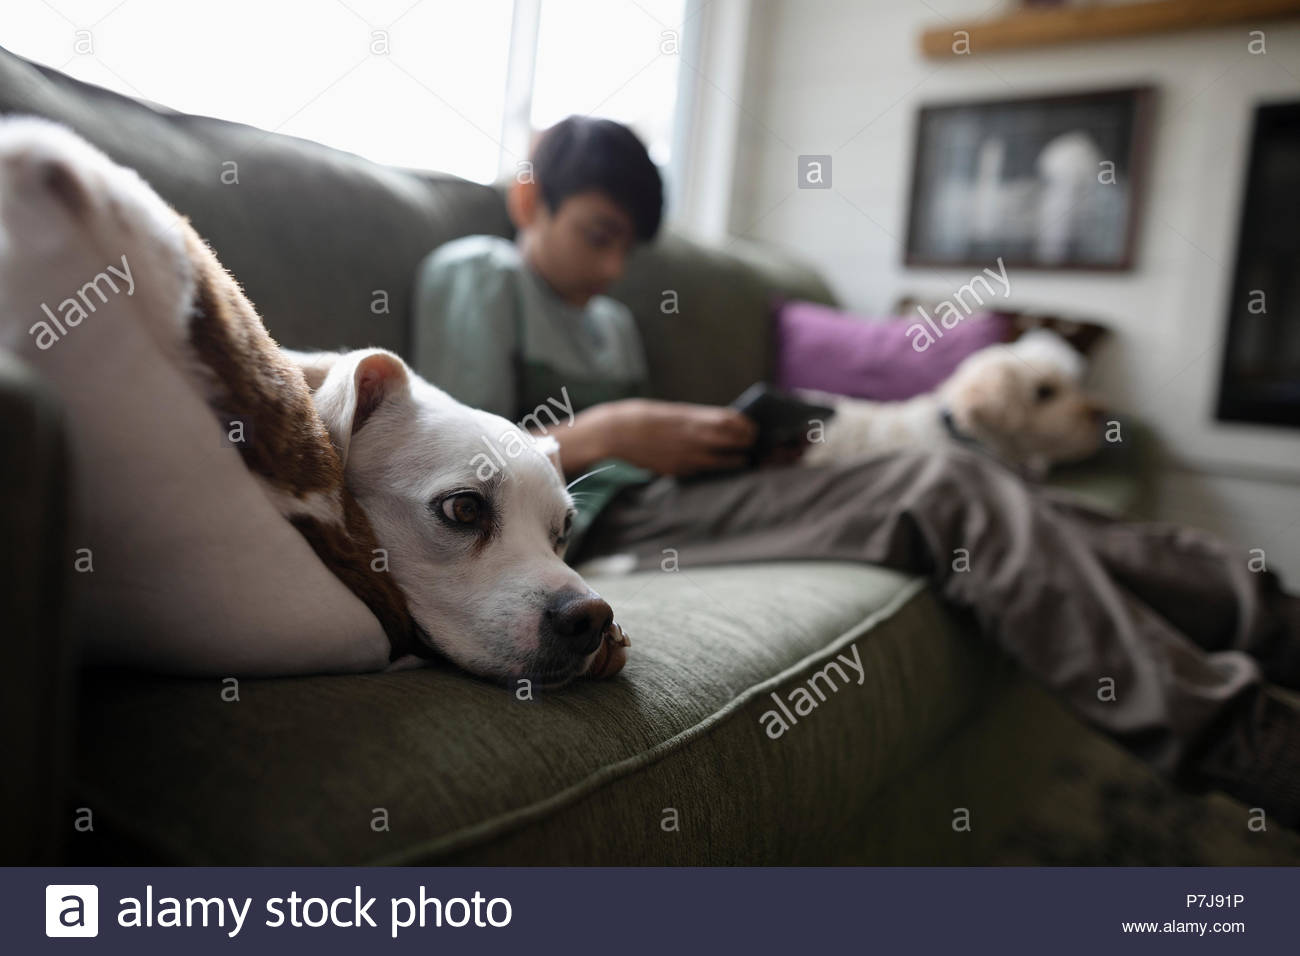 Cute dog relaxing on sofa - Stock Image